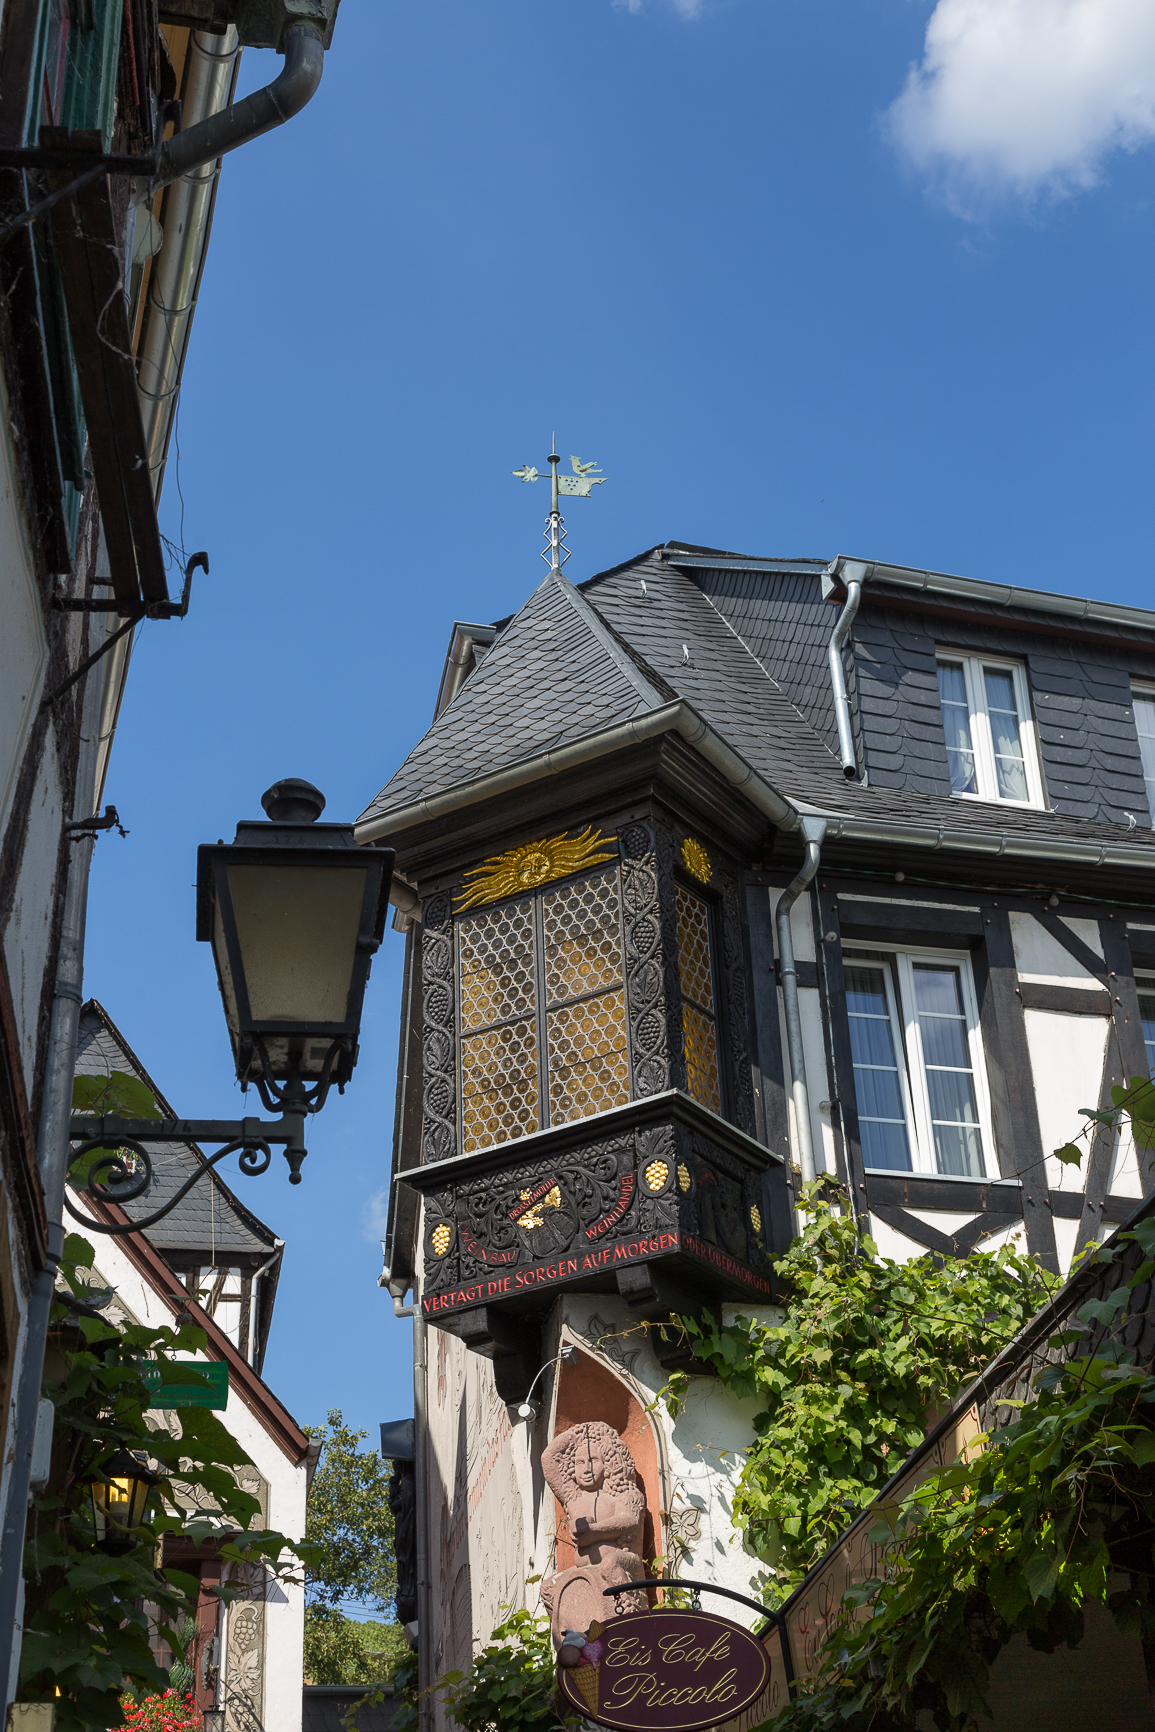 rudensheim-4-of-24